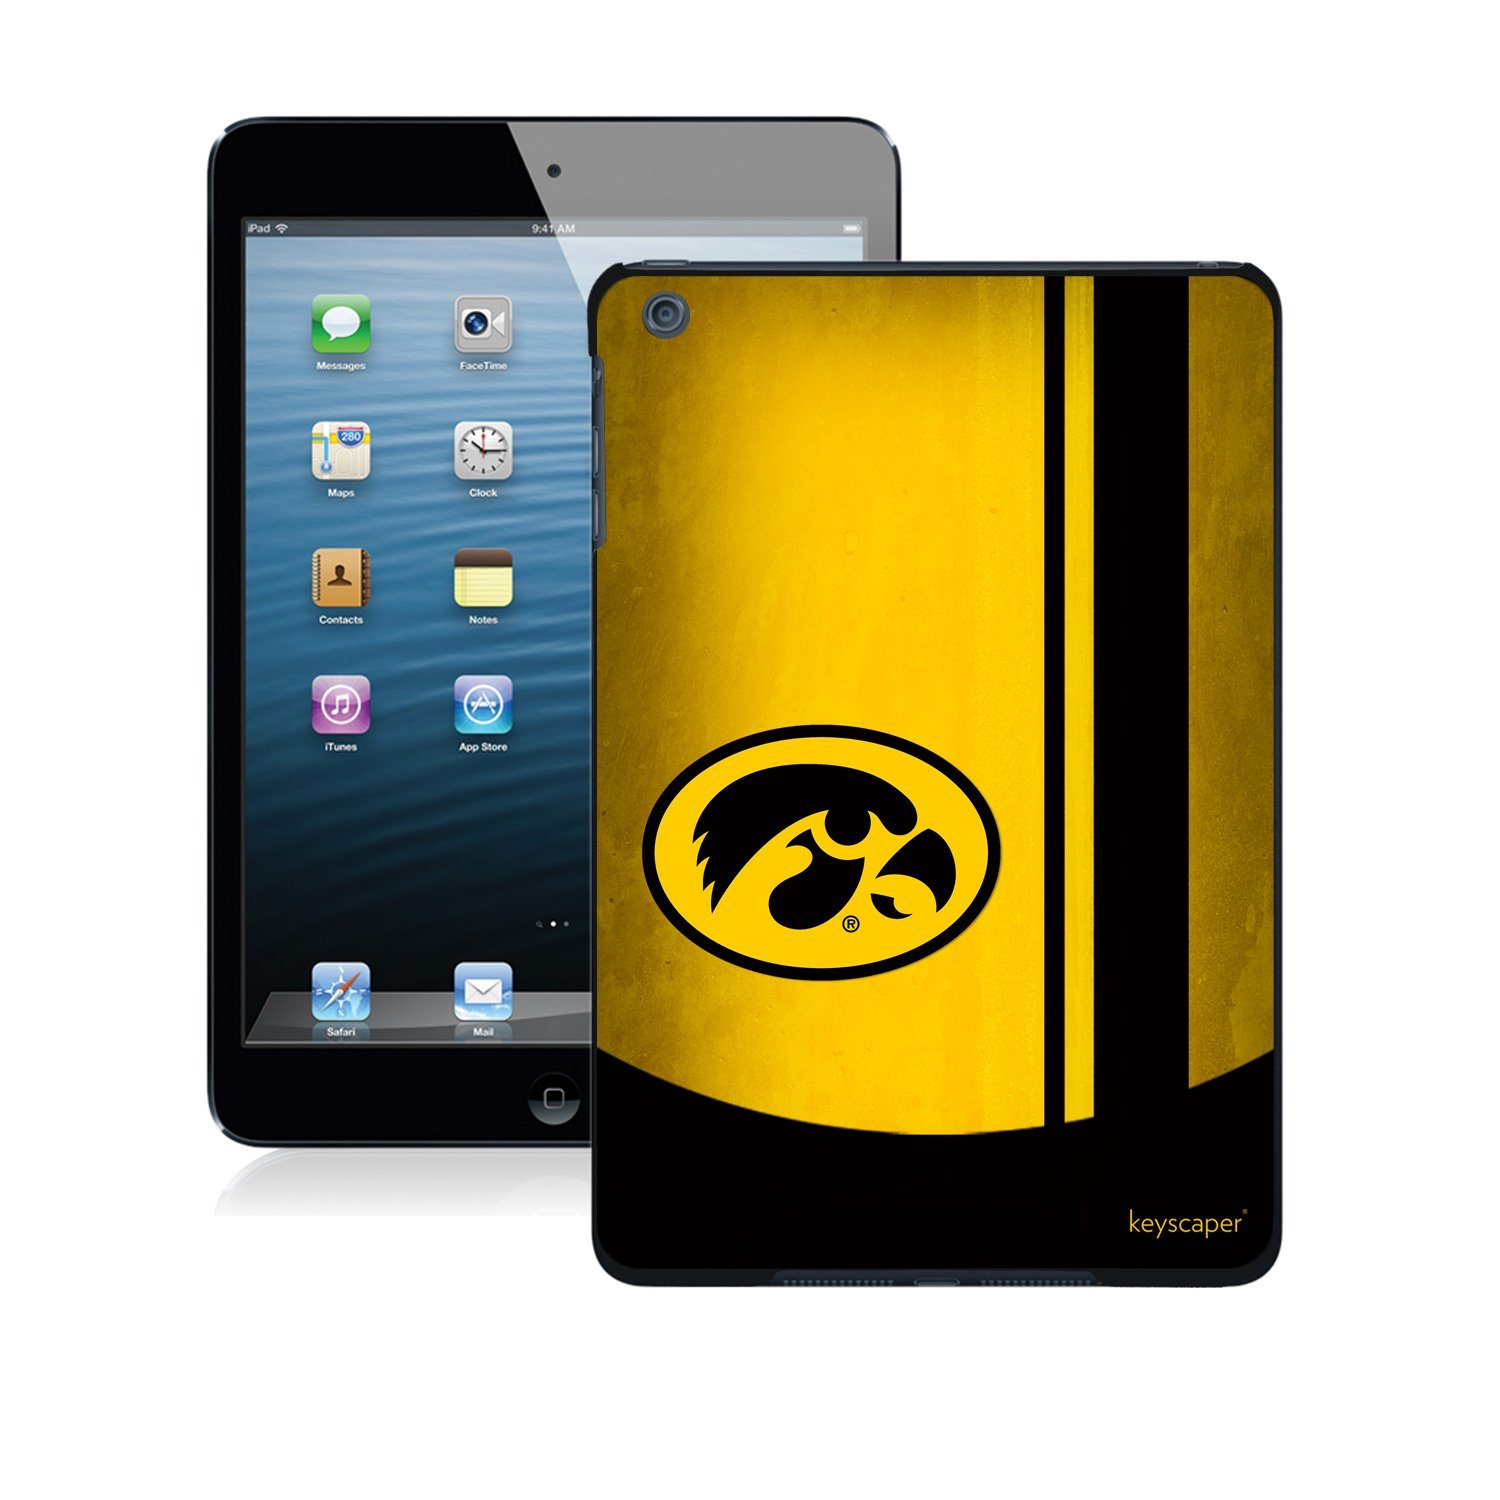 Iowa Hawkeyes iPad Mini Case officially licensed by the University of Iowa for the Apple iPad Mini by keyscaper®